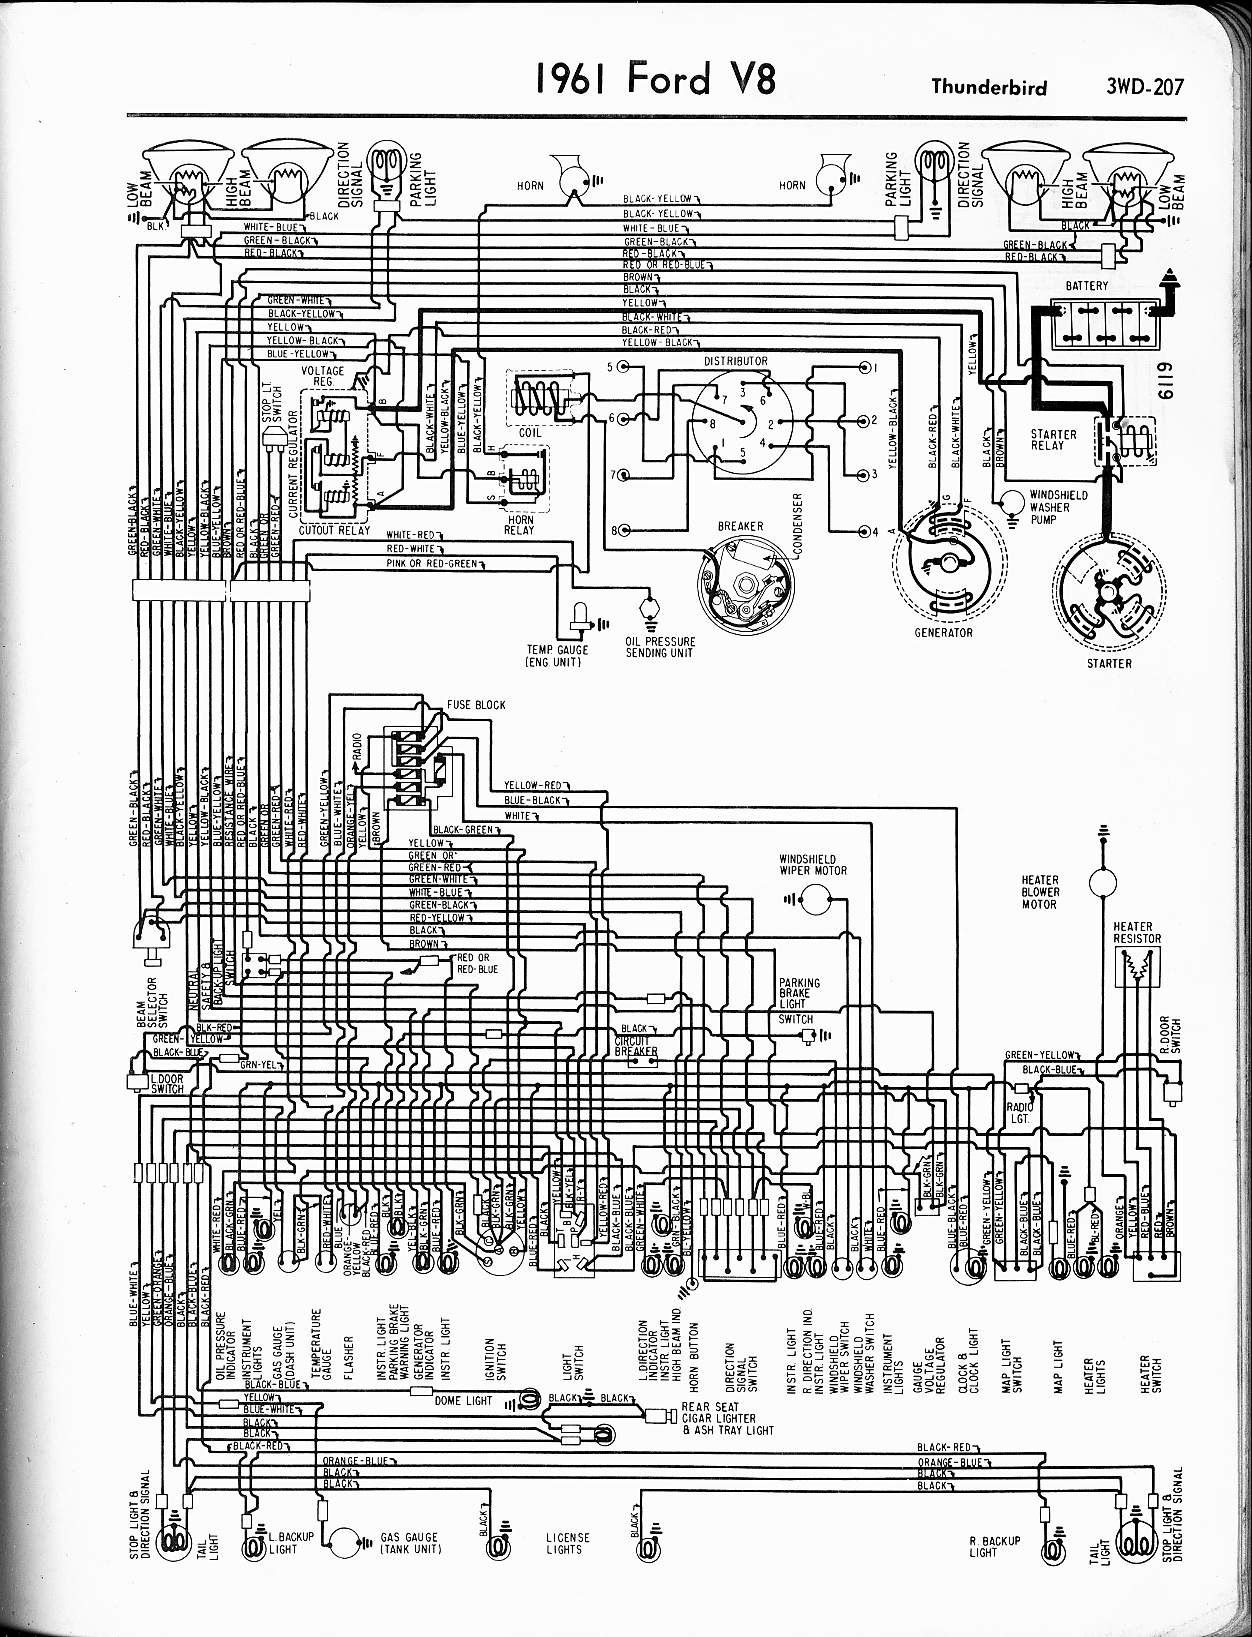 MWire5765 207 57 65 ford wiring diagrams ford wiring harness diagrams at aneh.co